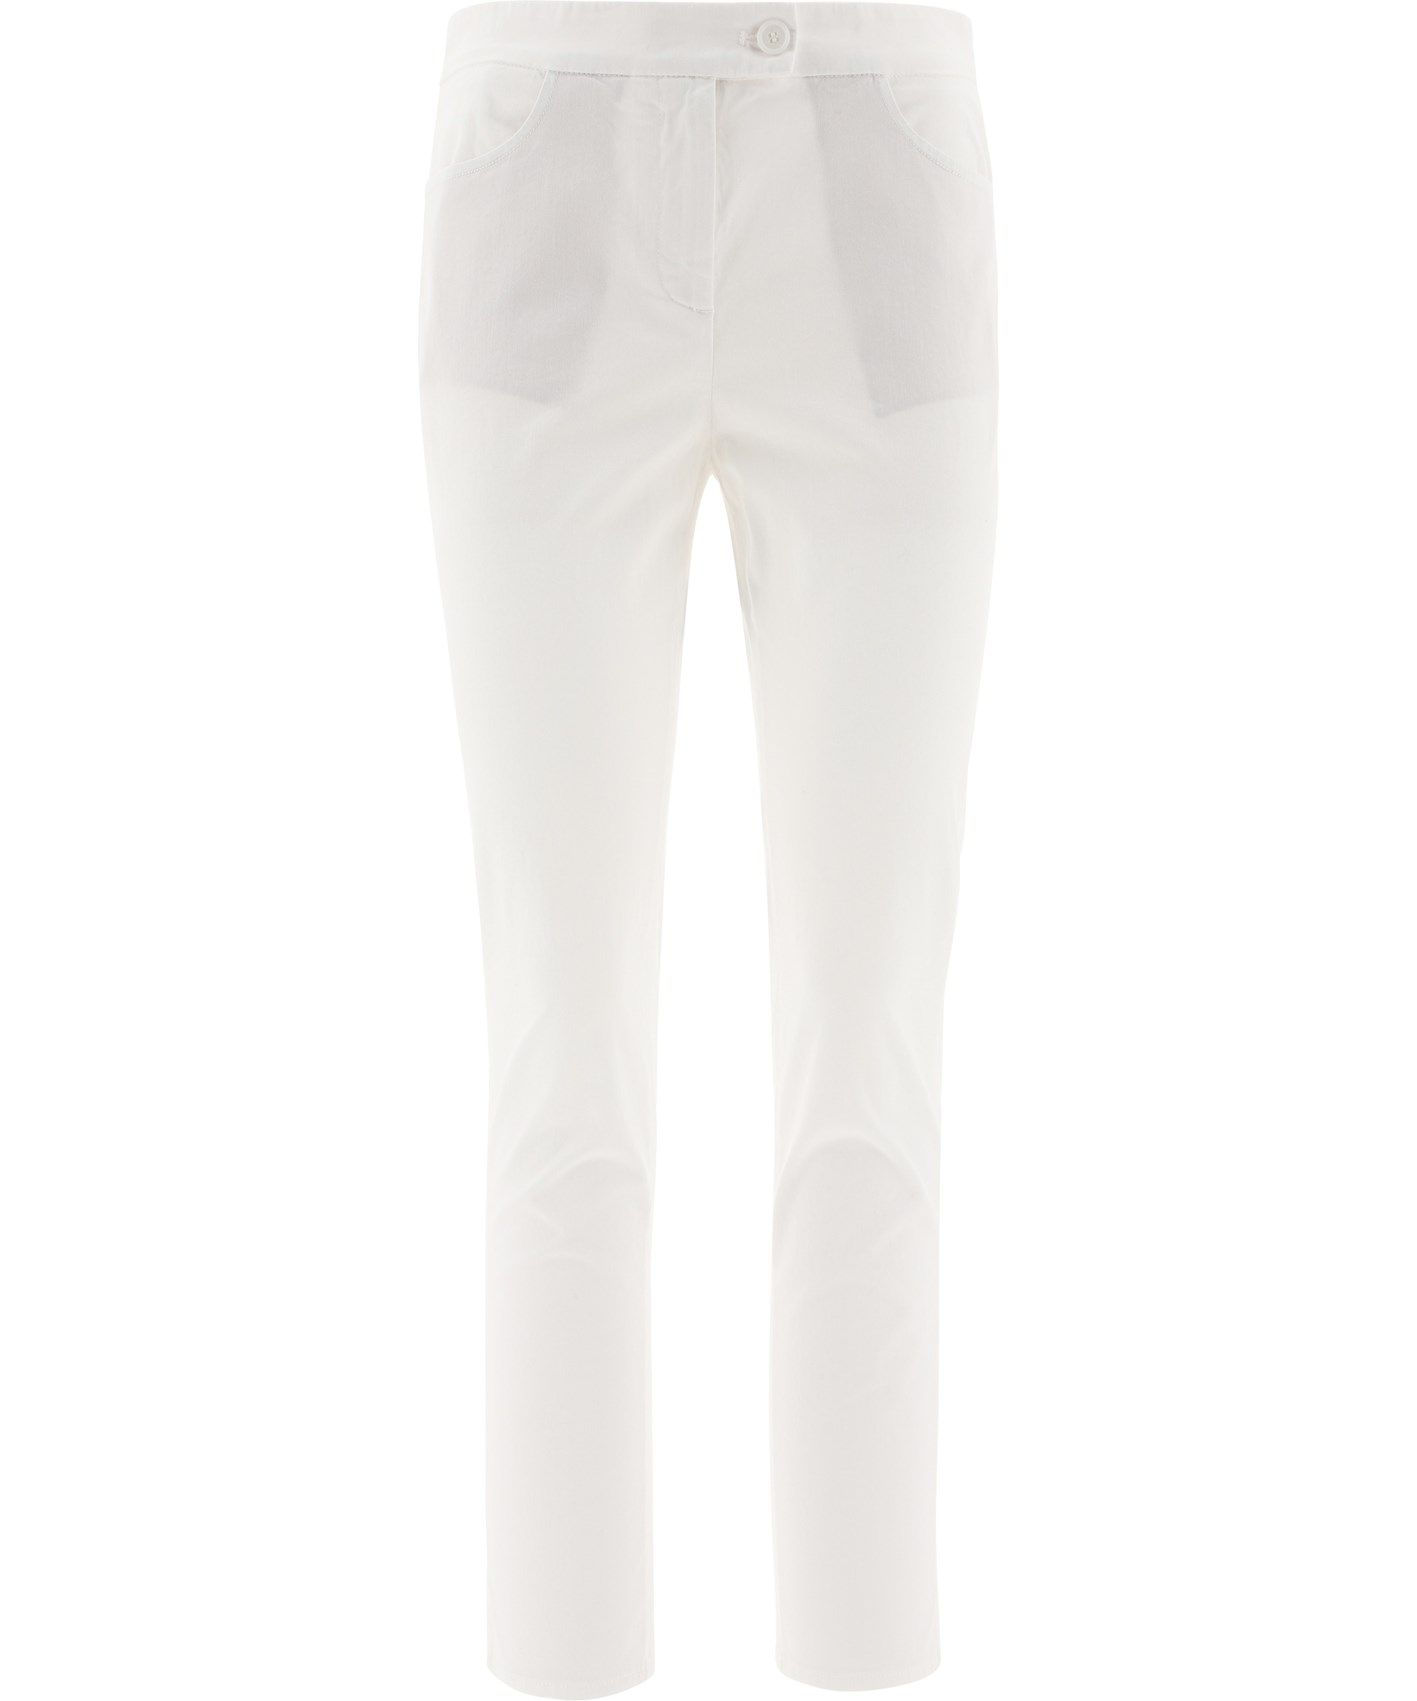 Aspesi Cottons ASPESI WOMEN'S WHITE COTTON PANTS